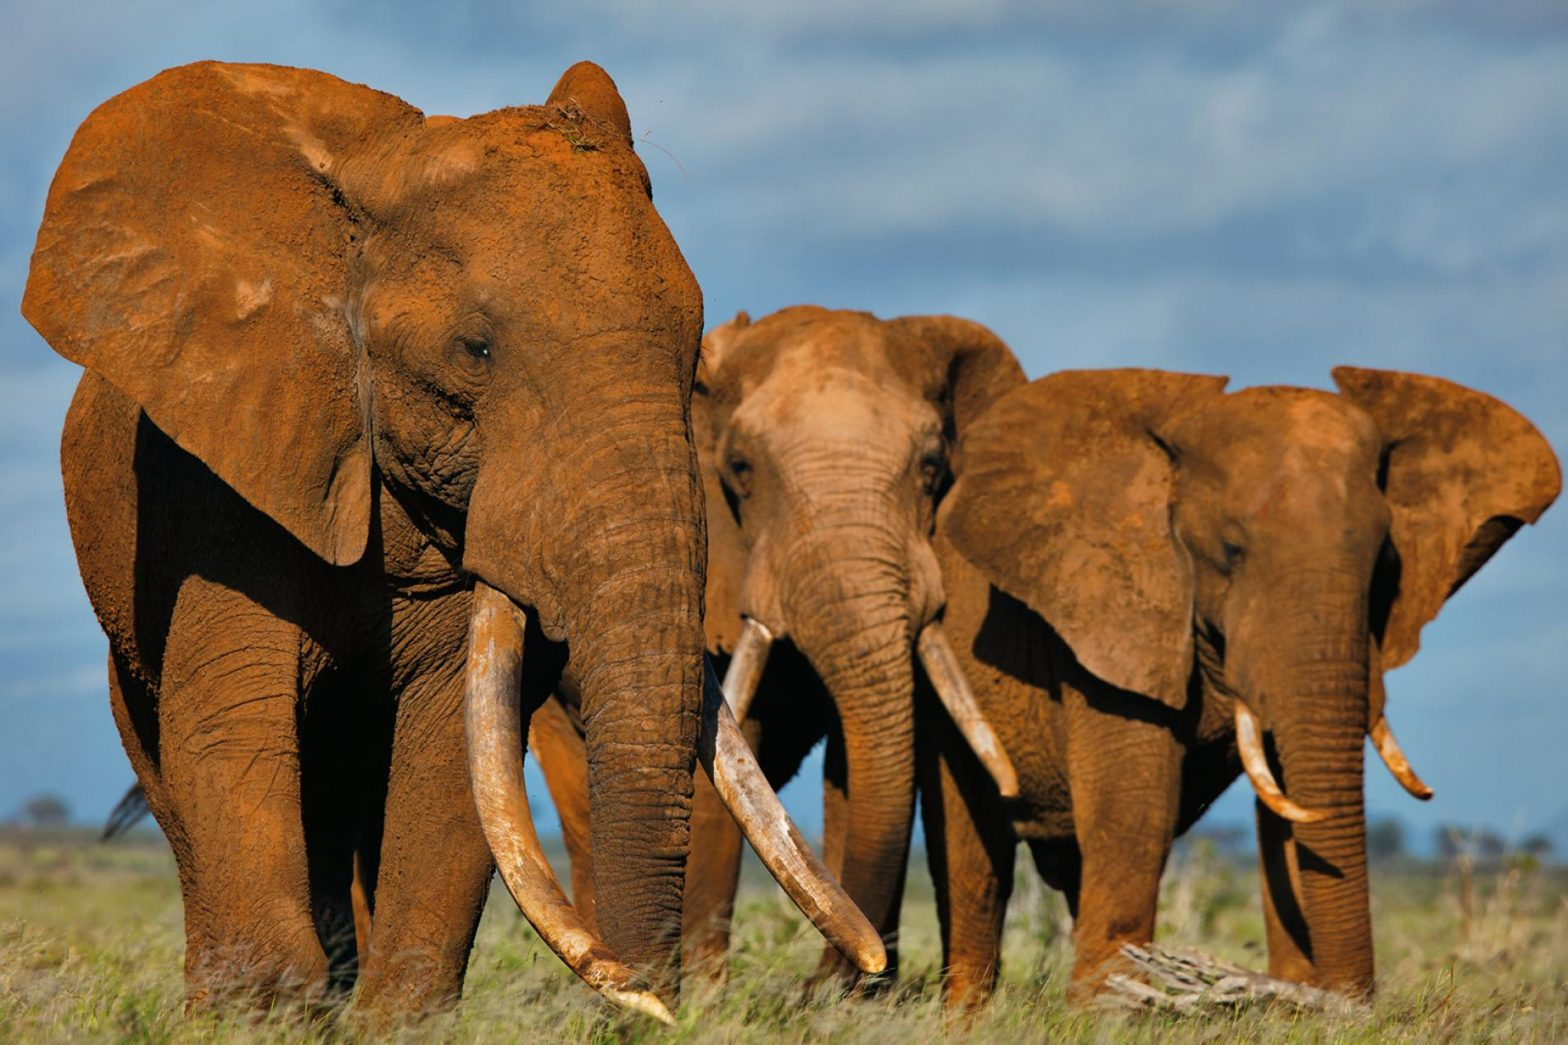 Southern African nations: Ask for permission to sell ivory, elephants.